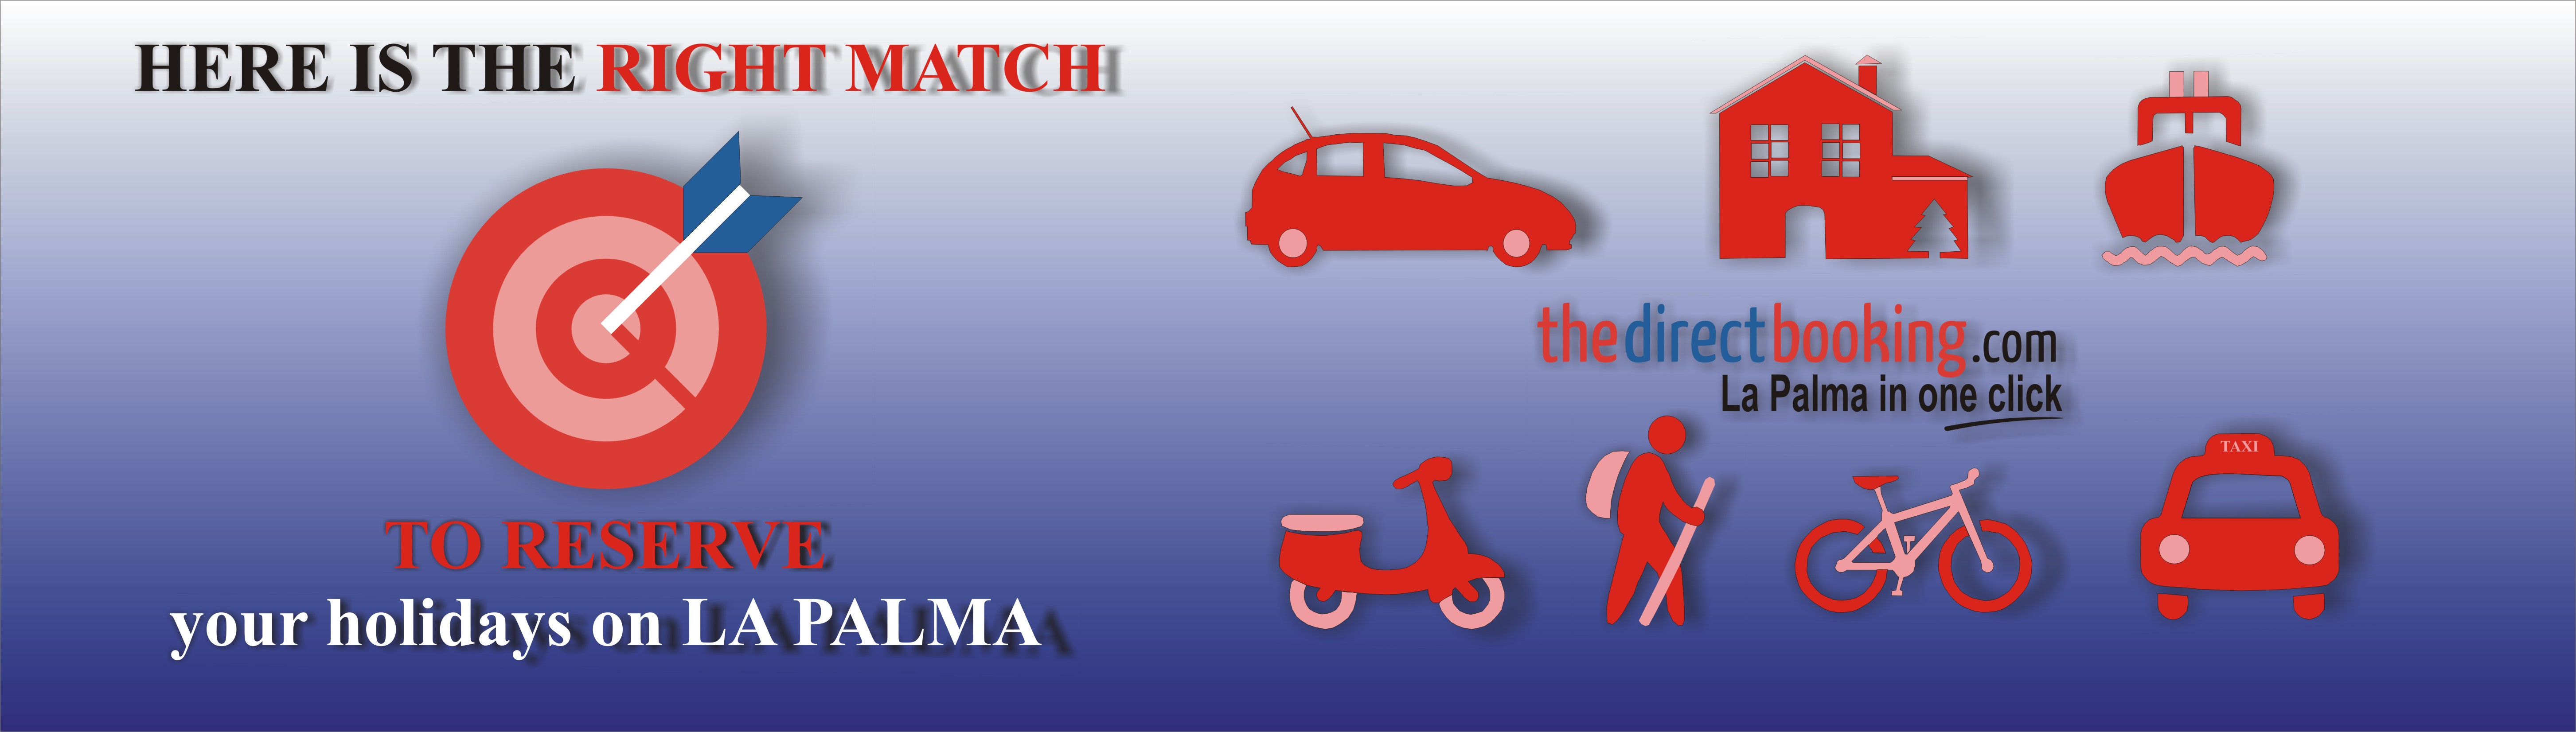 HERE-IS-THE-RIGHT-MATCH_EN_TAMANCA